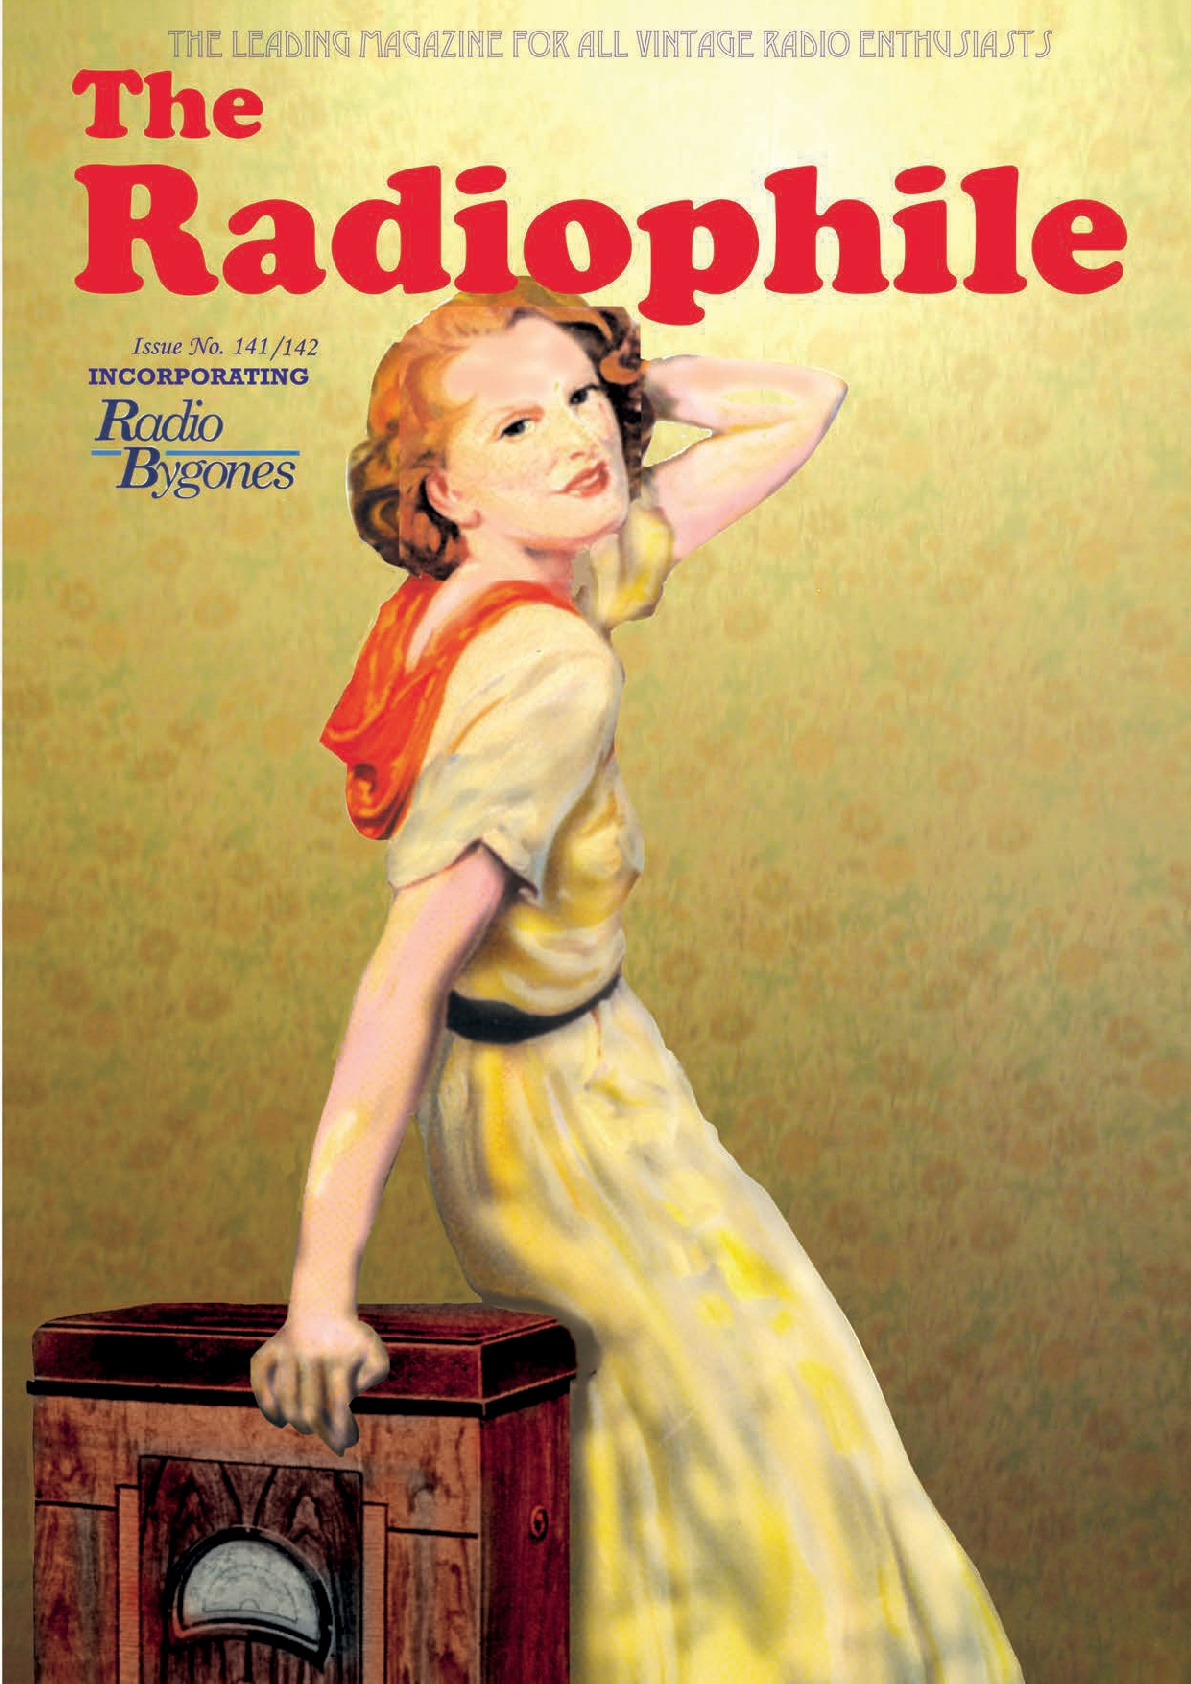 Radiophile Issue 141/142